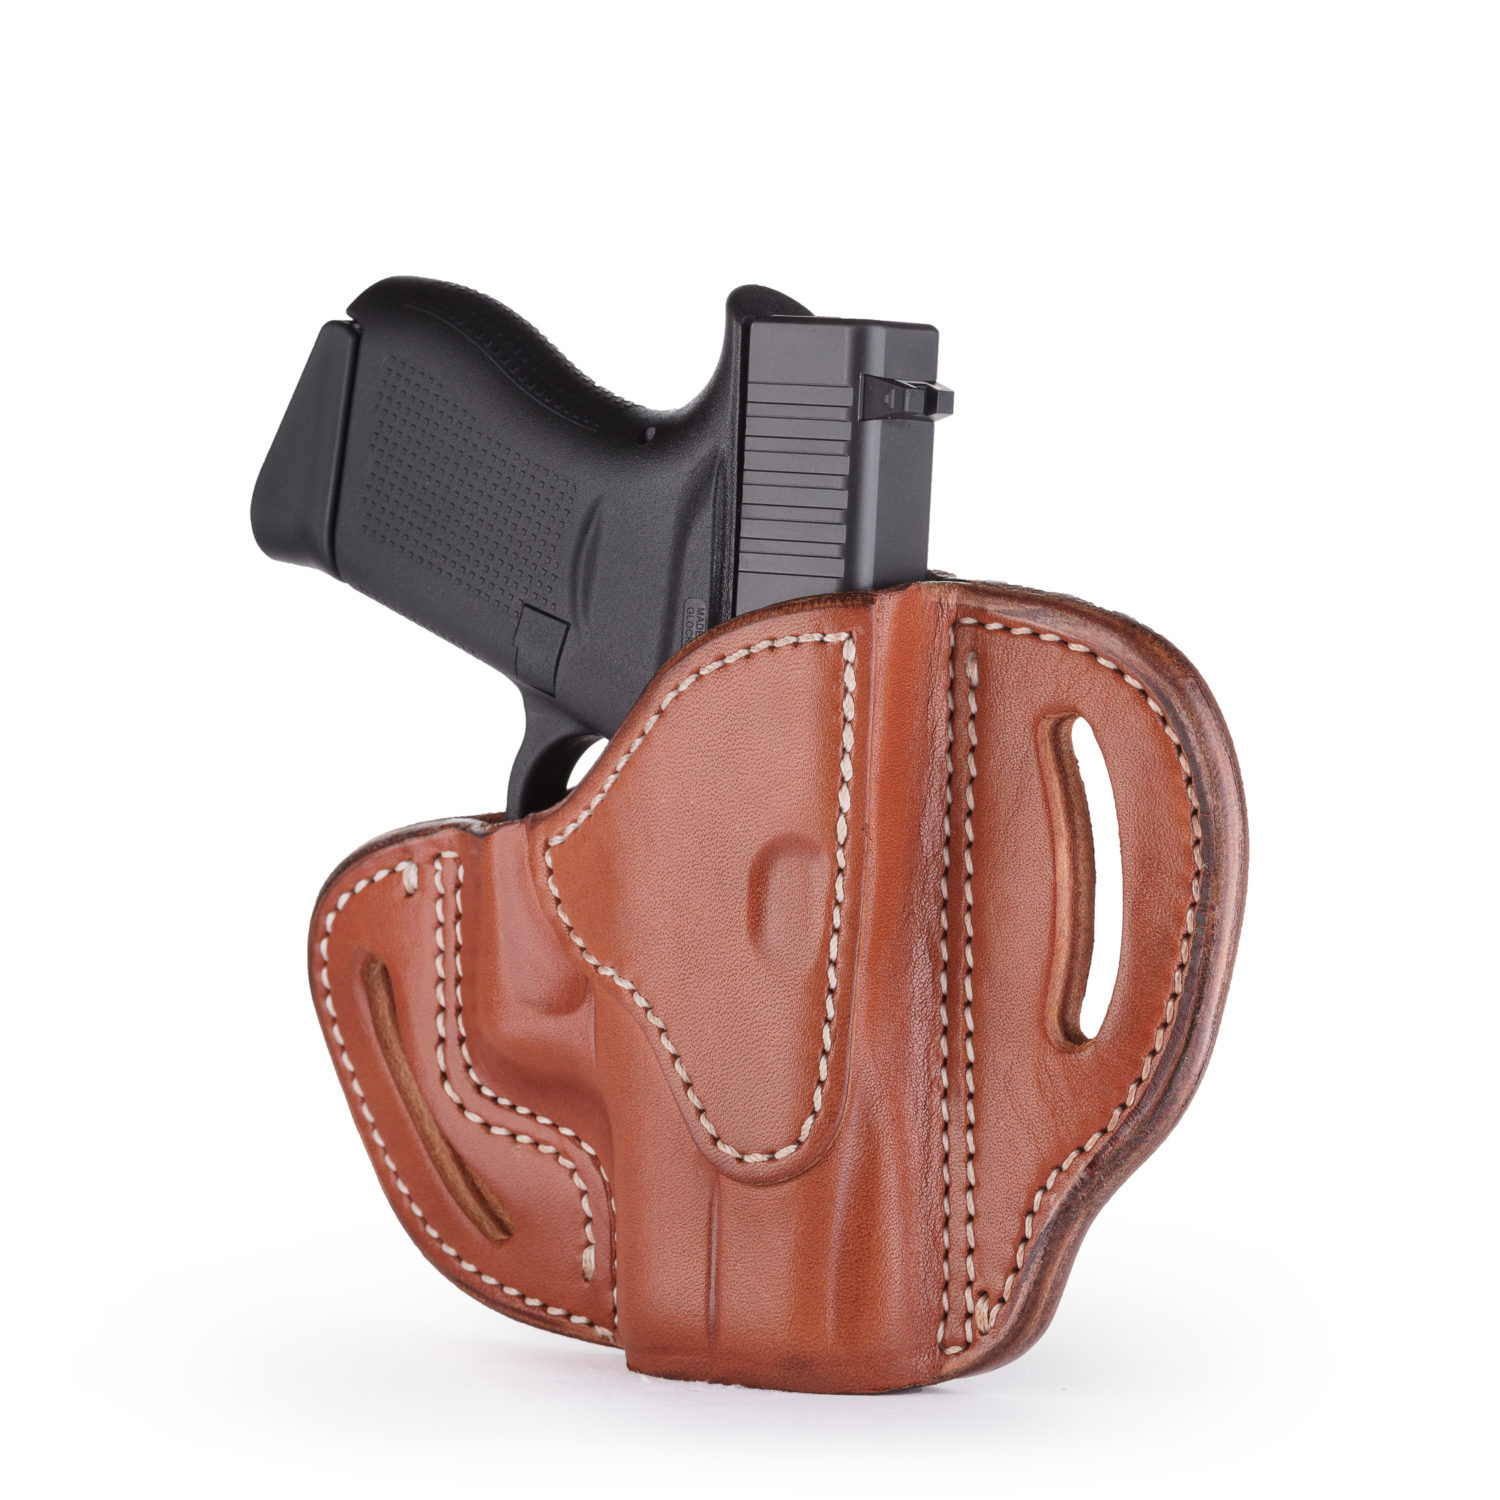 Glock 43 Leather Holster